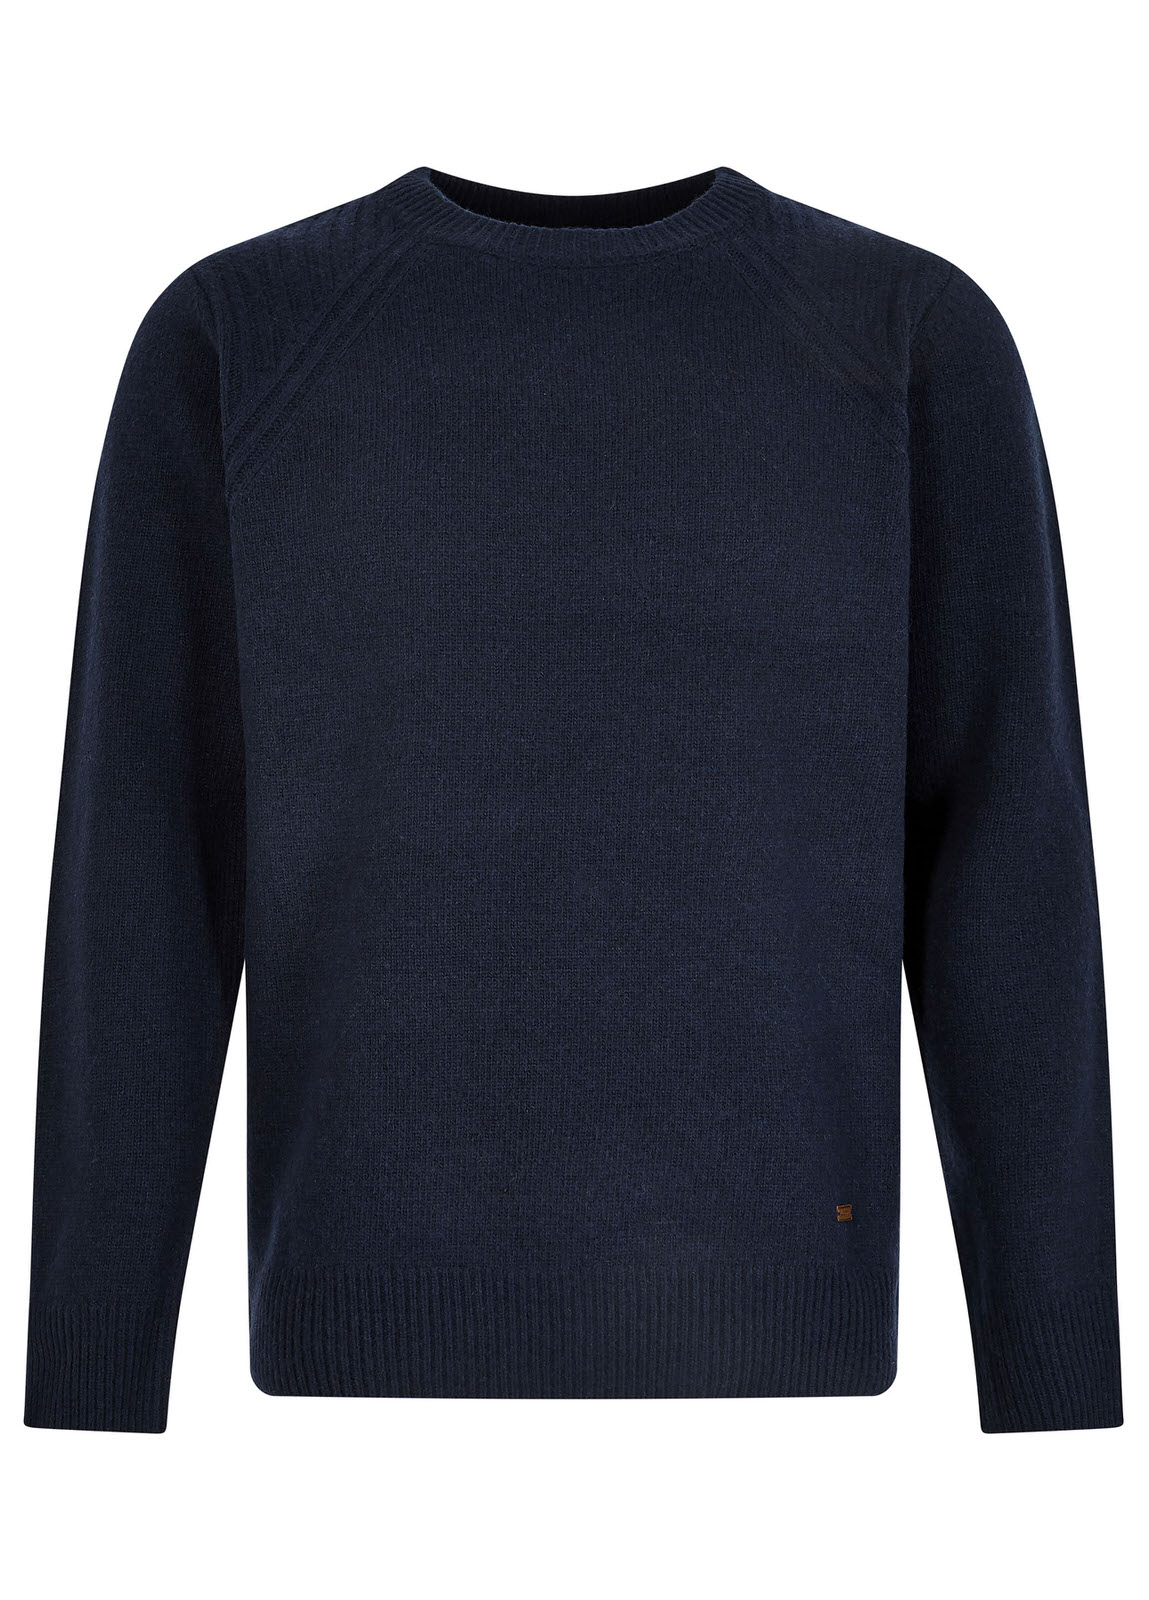 Kenny_Sweater_Navy_Image_1